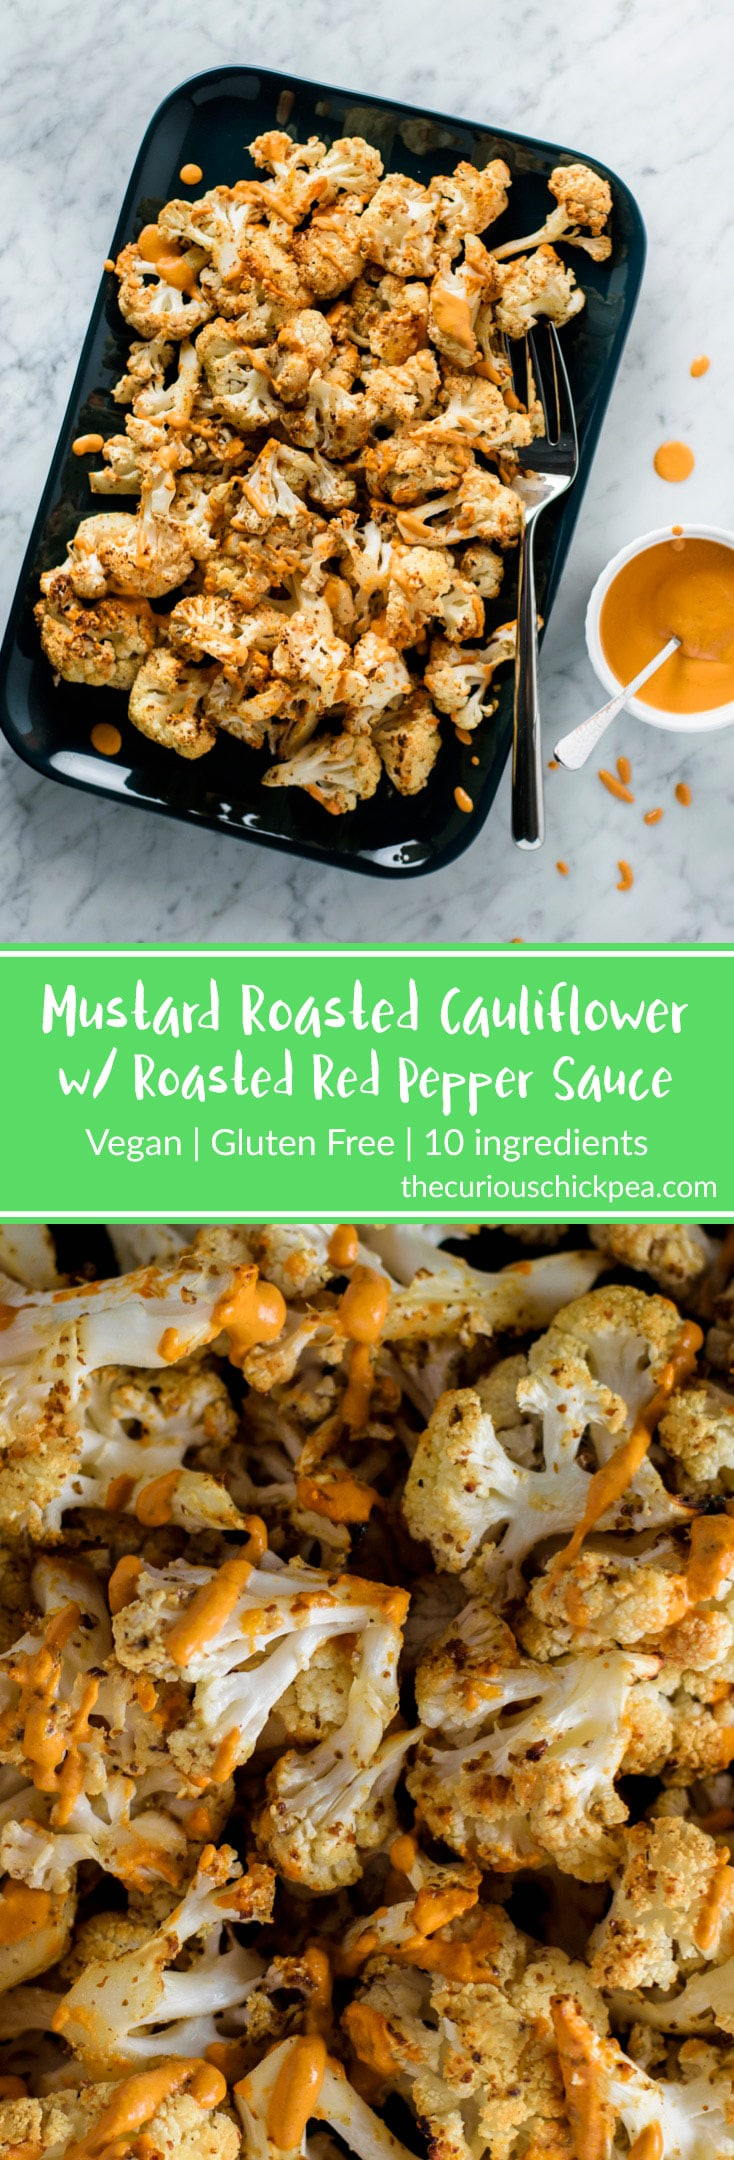 Mustard Roasted Cauliflower with Roasted Red Pepper Sauce | Vegan and Gluten Free. Cauliflower is tossed in a spicy brown mustard and roasted until soft and caramelized, then finished with a drizzle of creamy toasted walnut and red pepper sauce. It makes the perfect side dish! | thecuriouschickpea.com #vegan #cauliflower